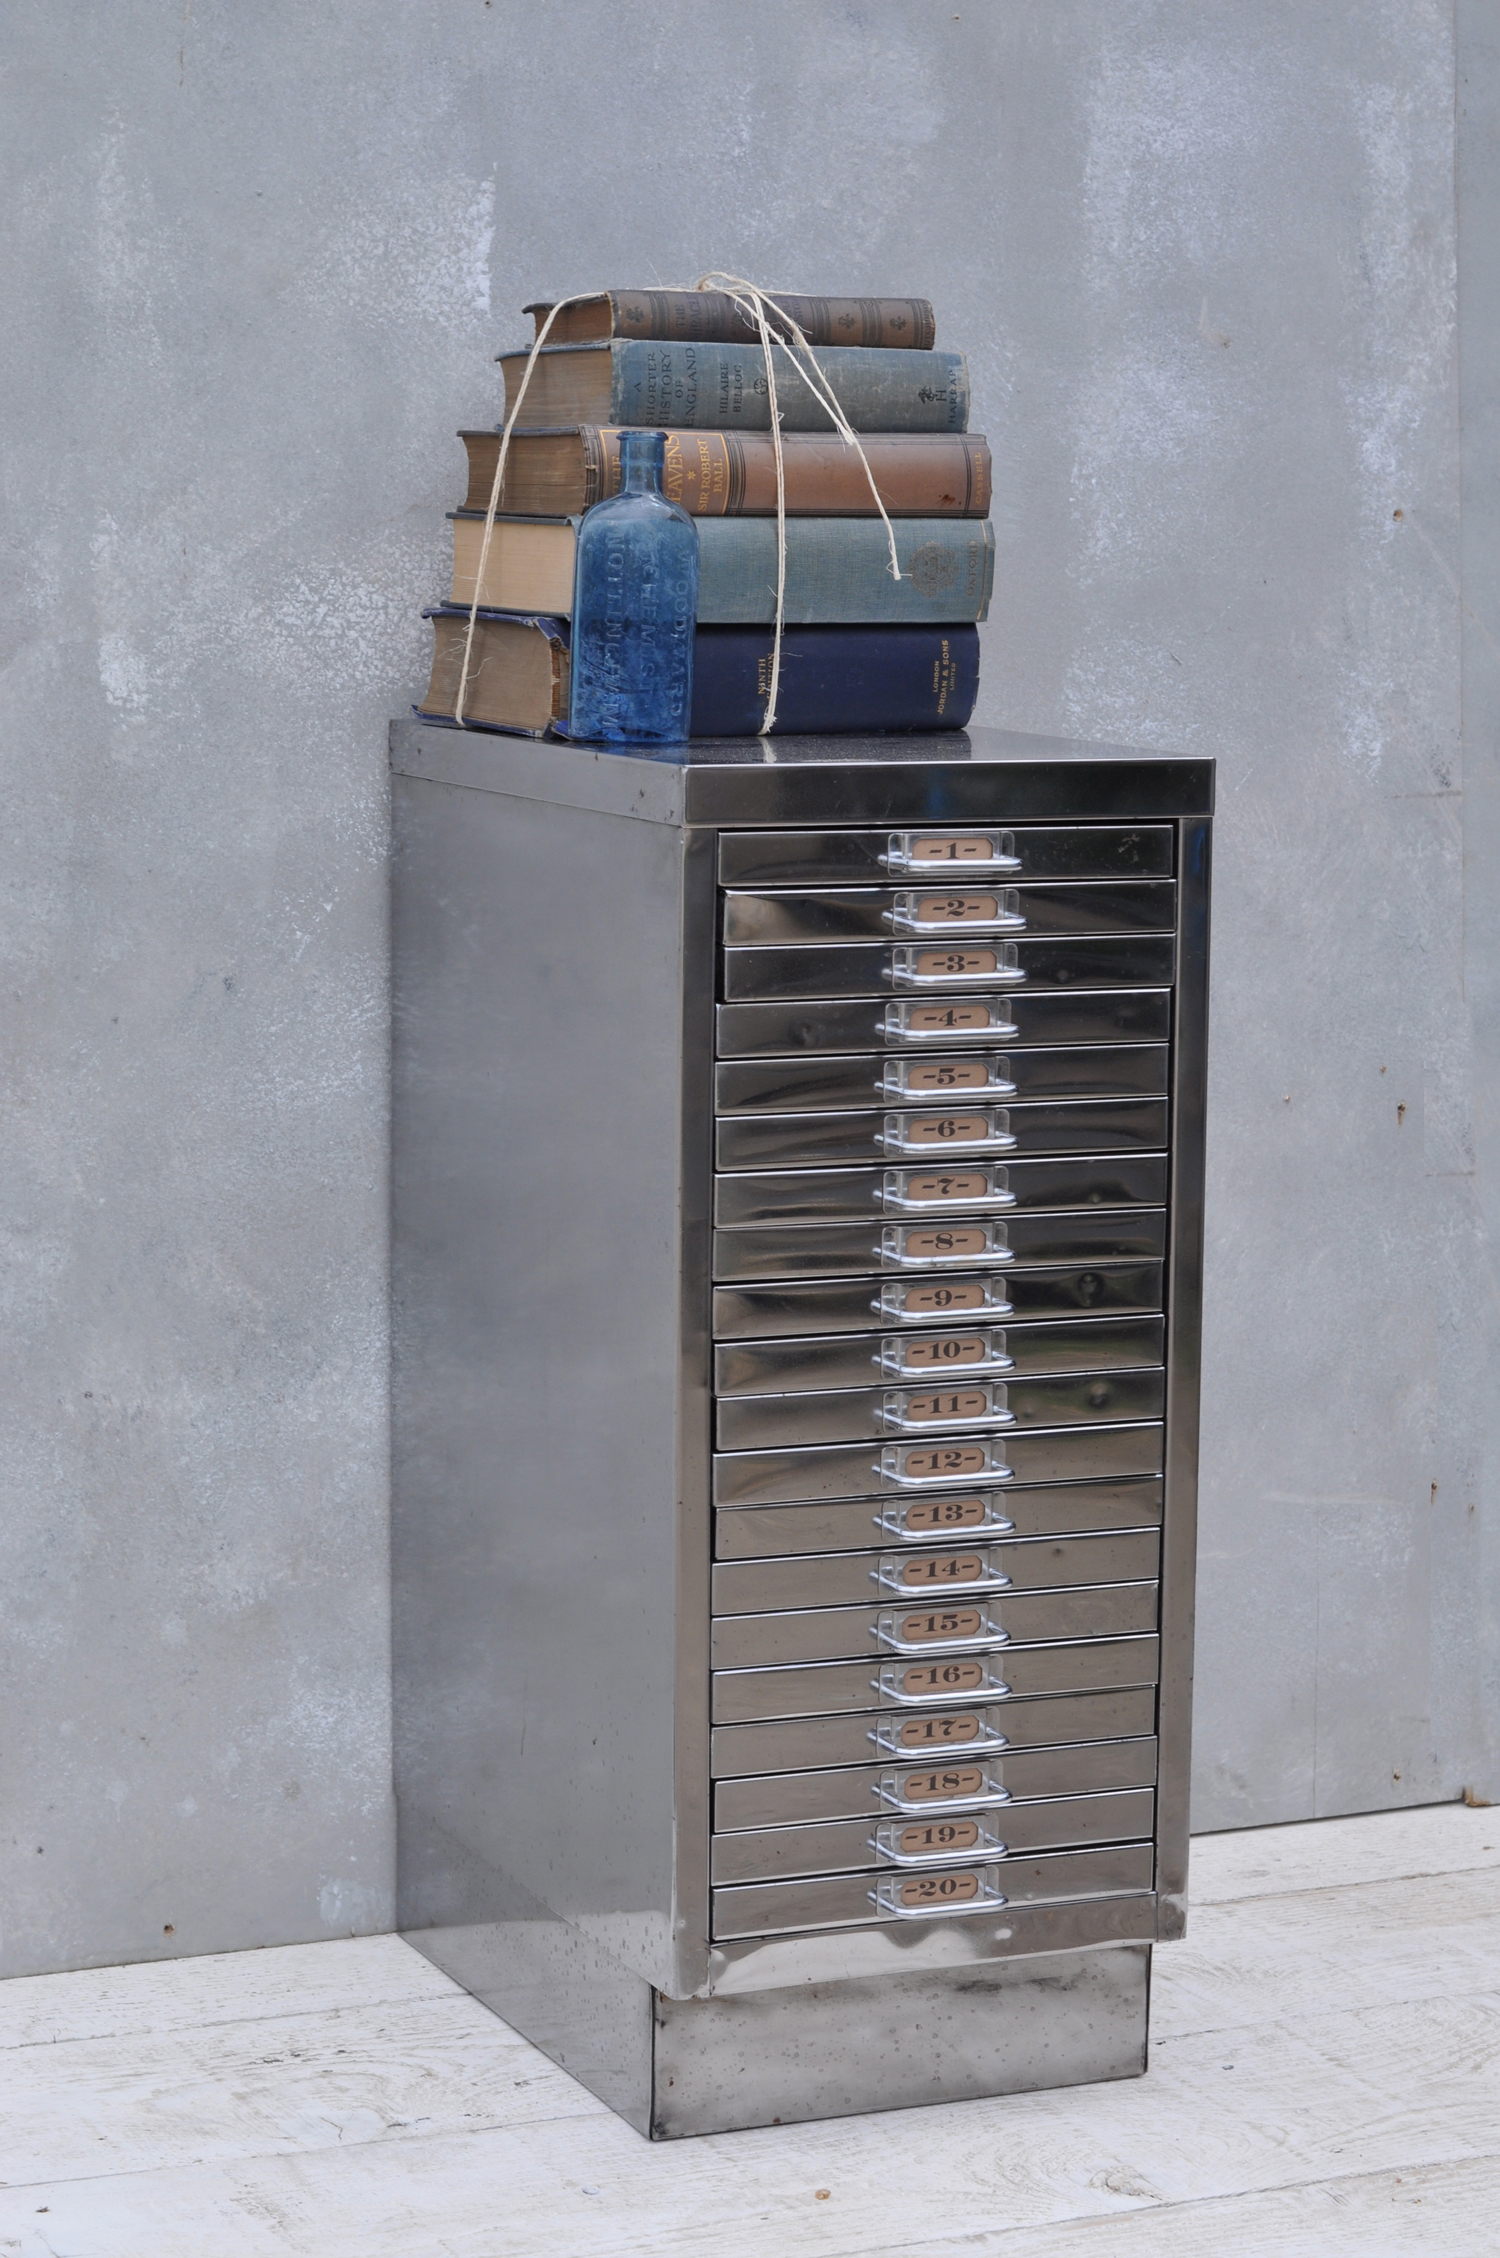 Vintage Industrial Steel Filing Cabinet 20 Drawer